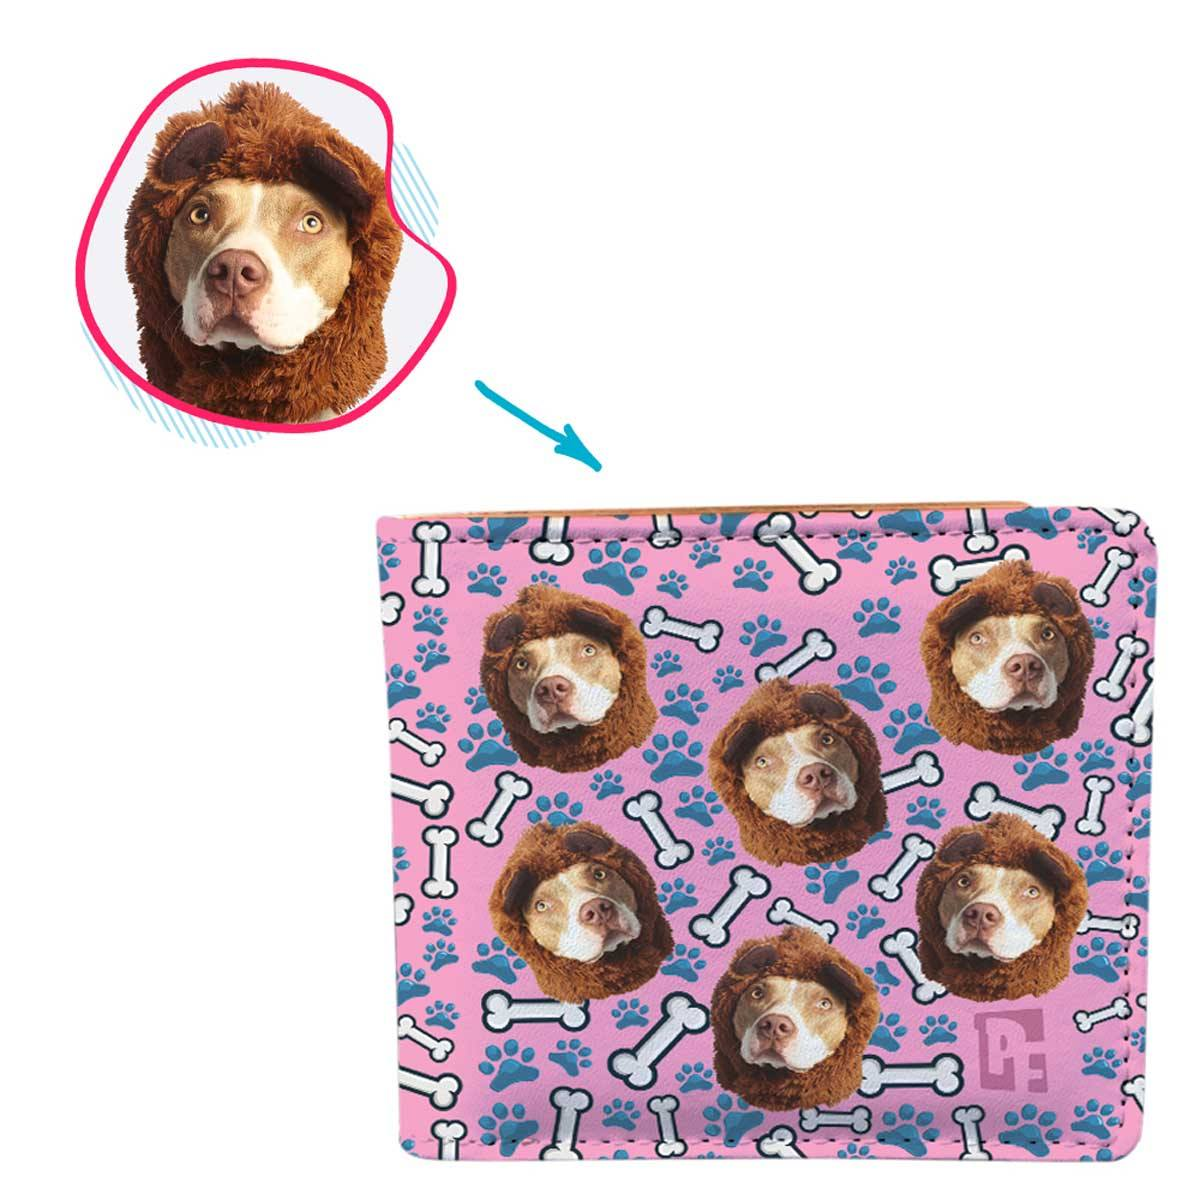 pink Dog wallet personalized with photo of face printed on it